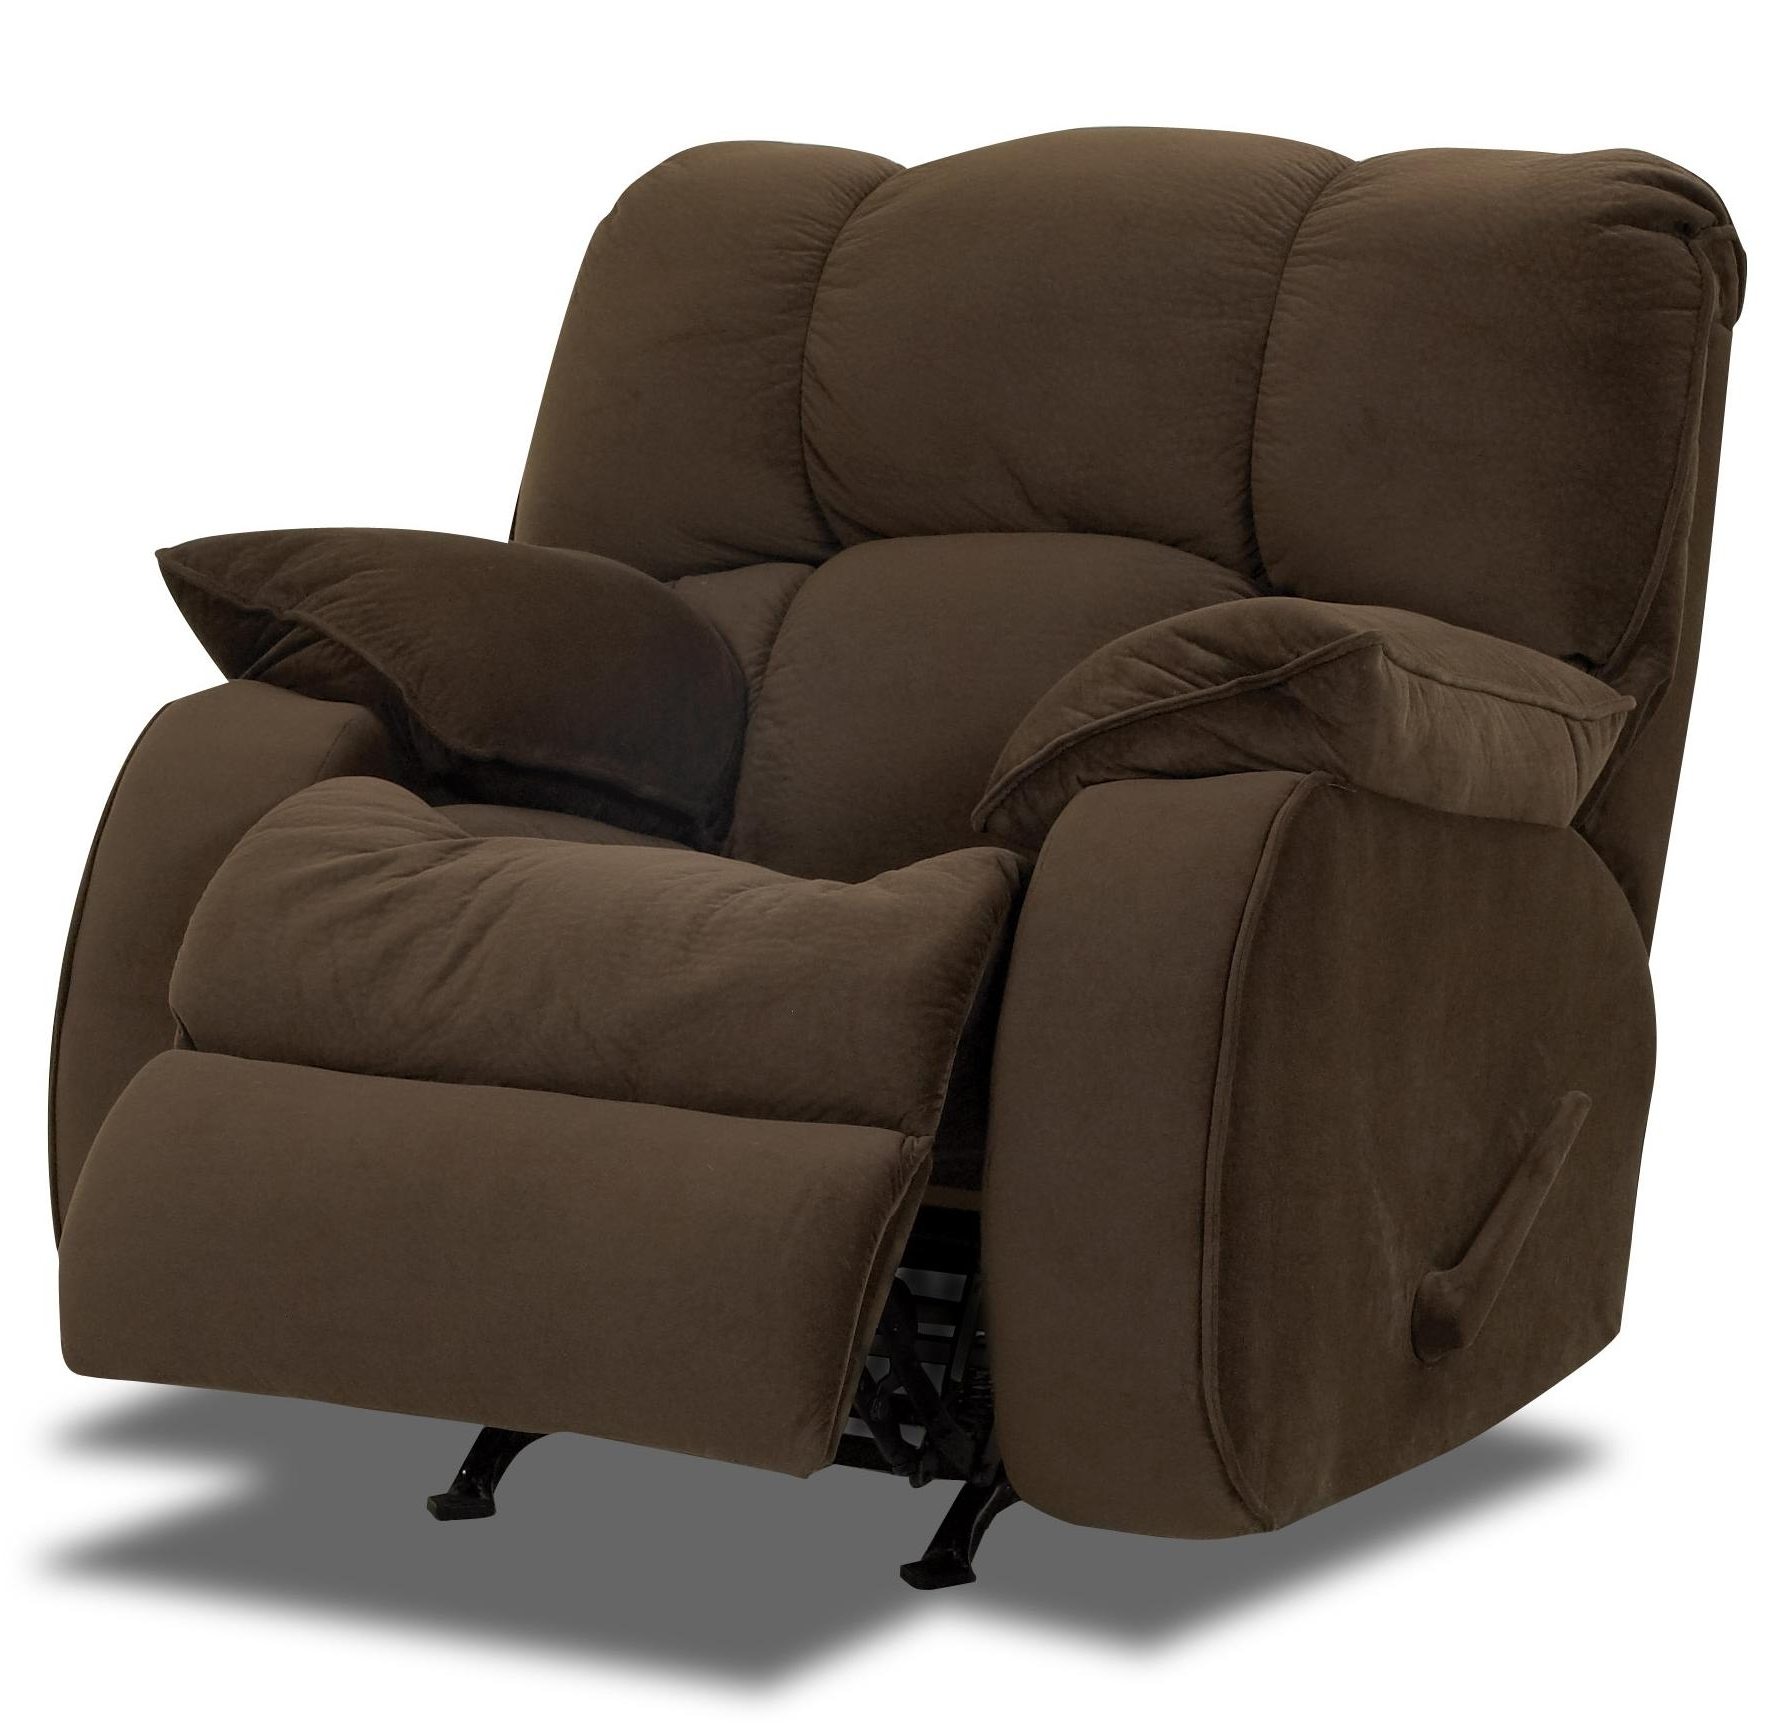 Well-liked Rocking Sofa Chairs inside Chairs : Lane Leather Recliner Comfortable Recliner Chair